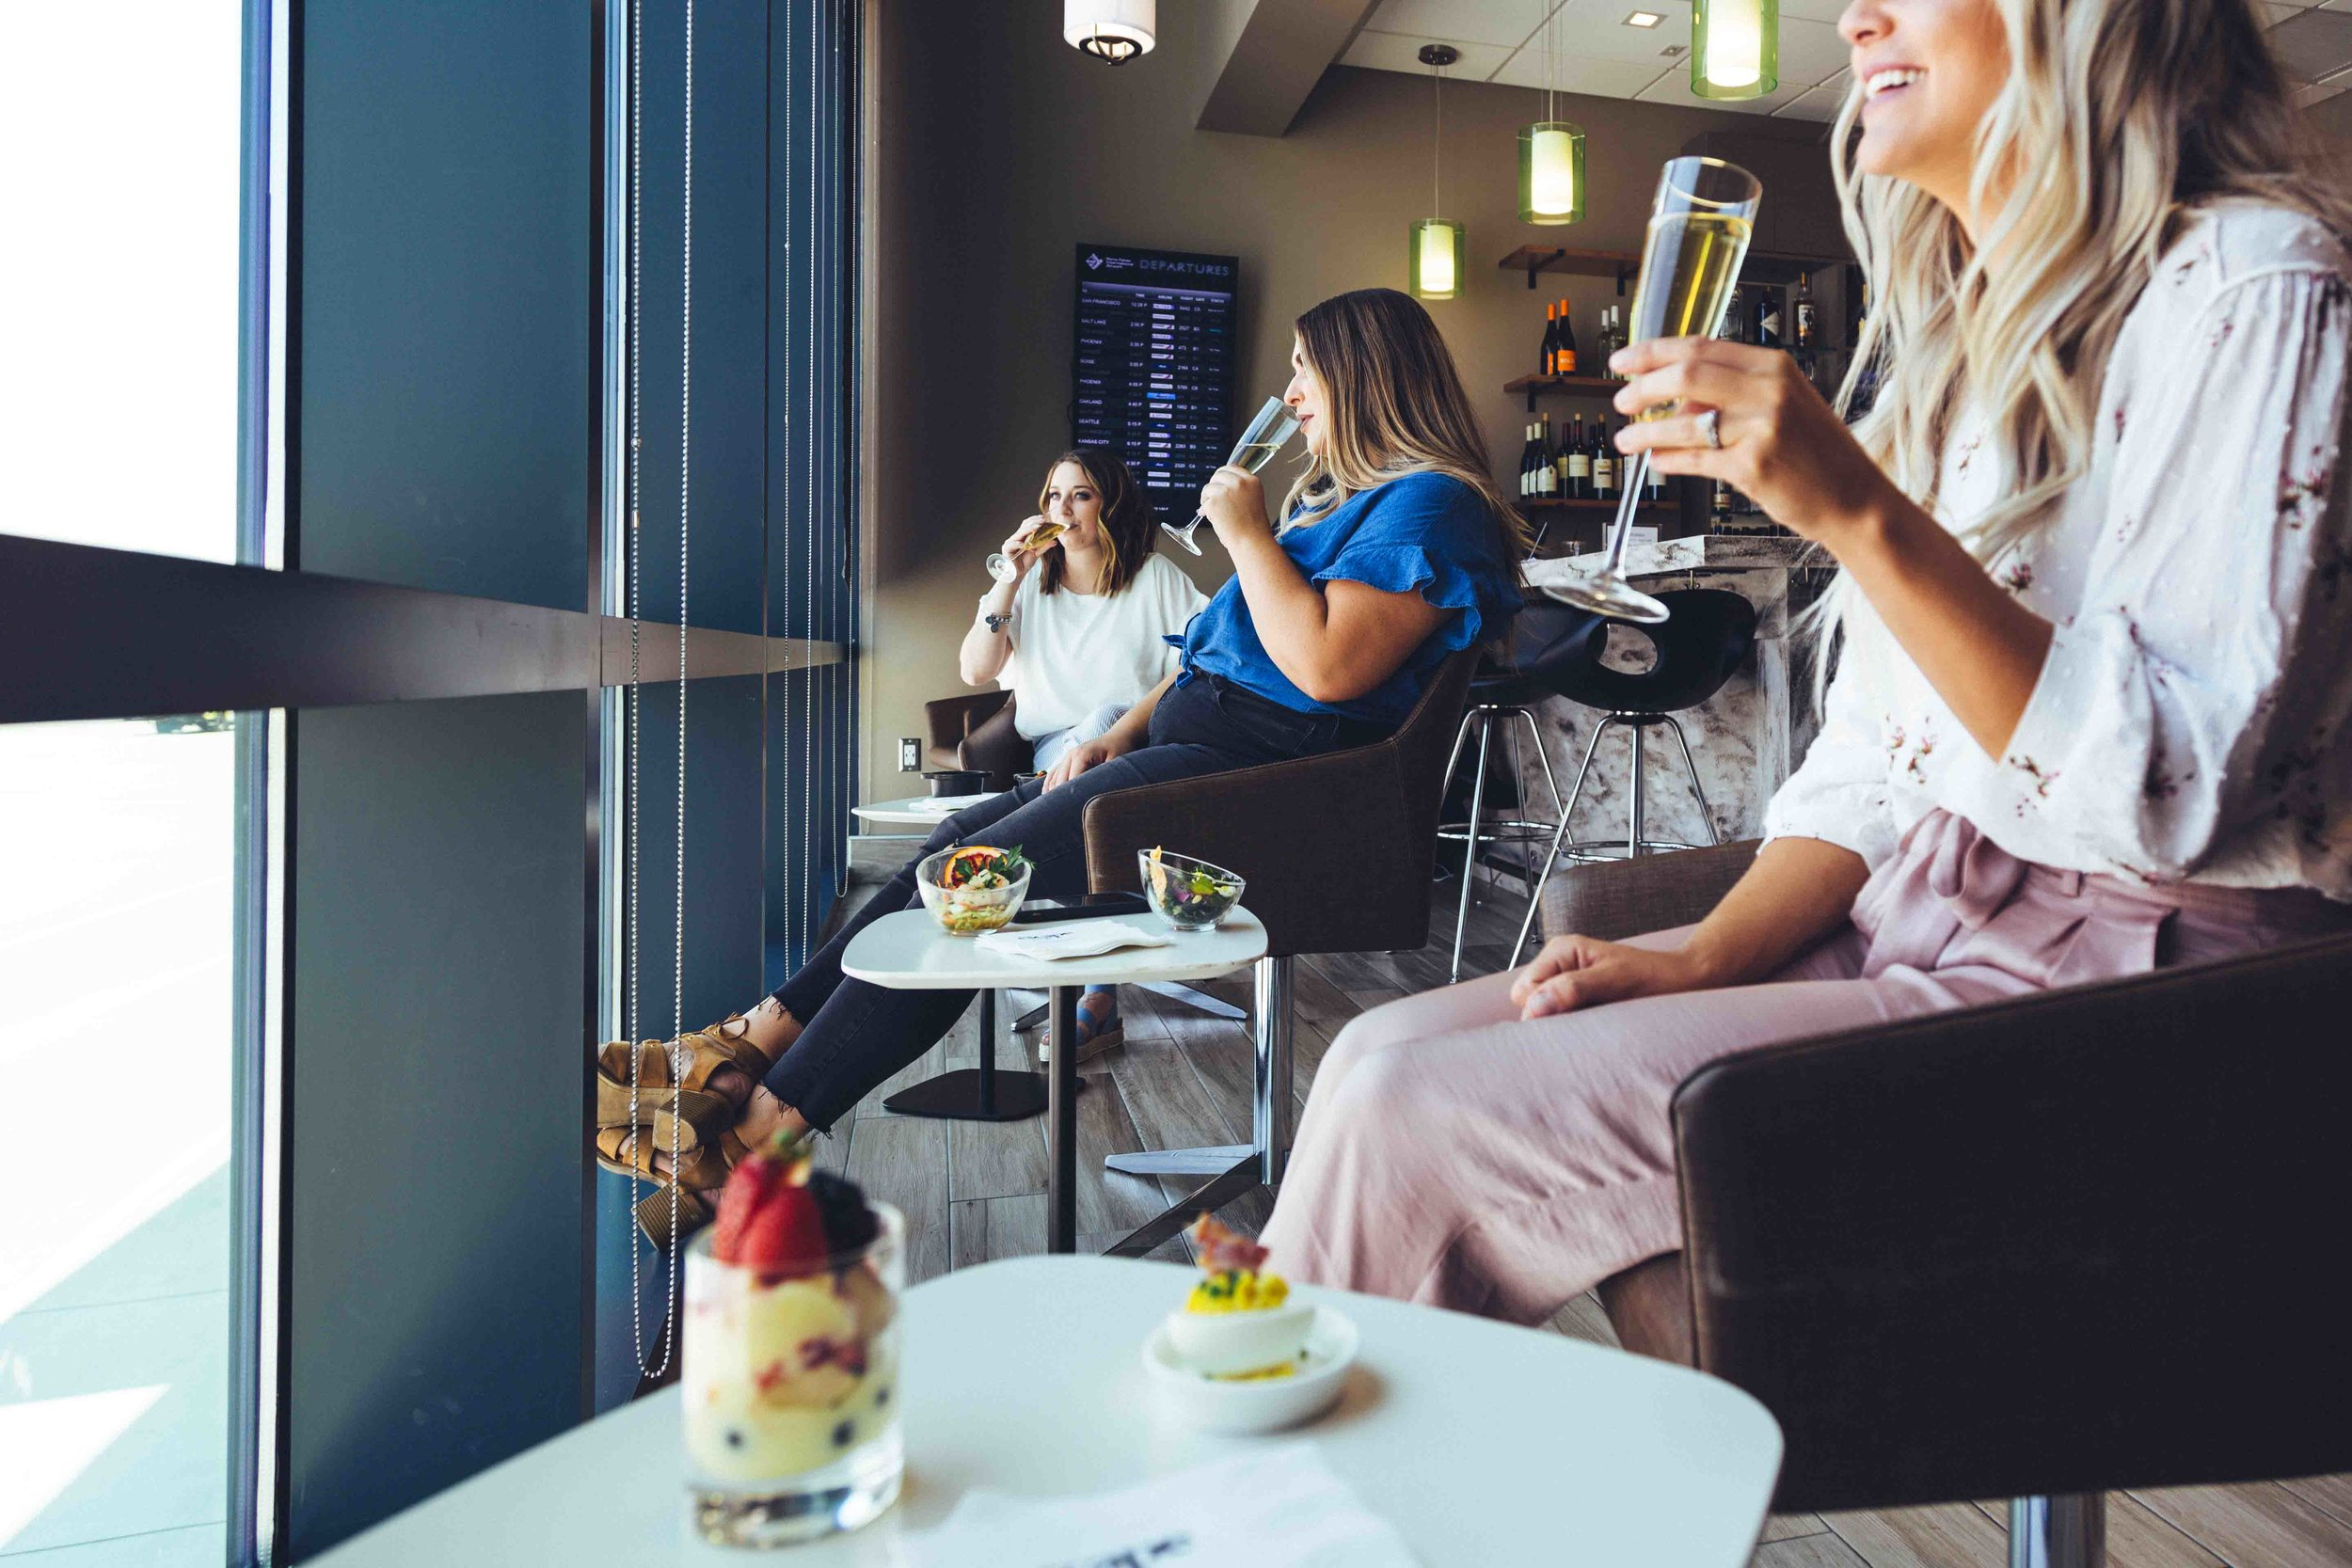 airport lounges - An award winning common-use airport lounges that'll solidify your airport as the go-to destination for discerning passengers.